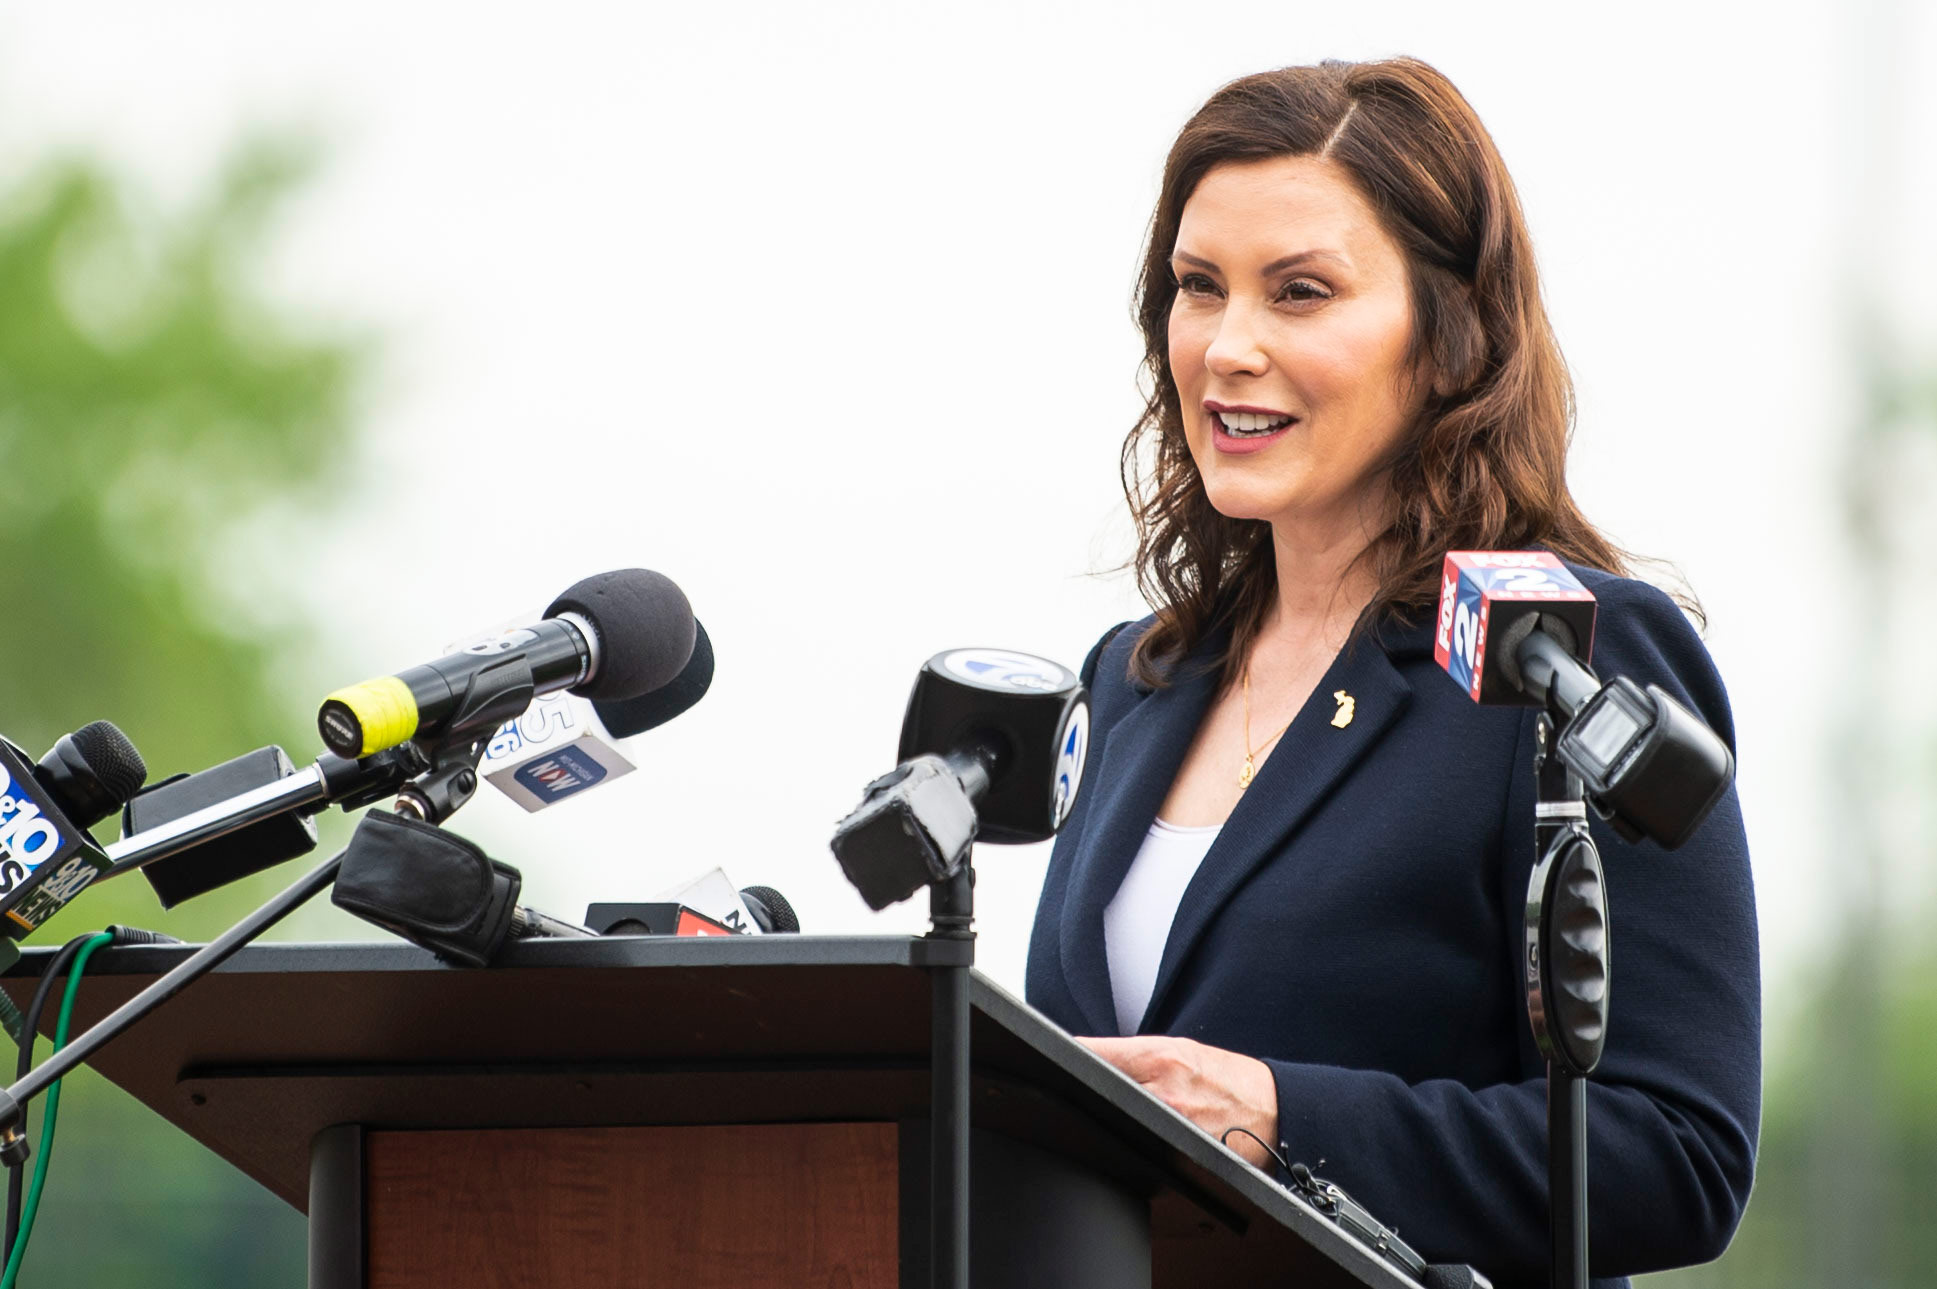 Michigan Gov. Gretchen Whitmer speaks during a press conference about the state's Covid-19 response on Thursday, May 20, in Midland, Michigan.